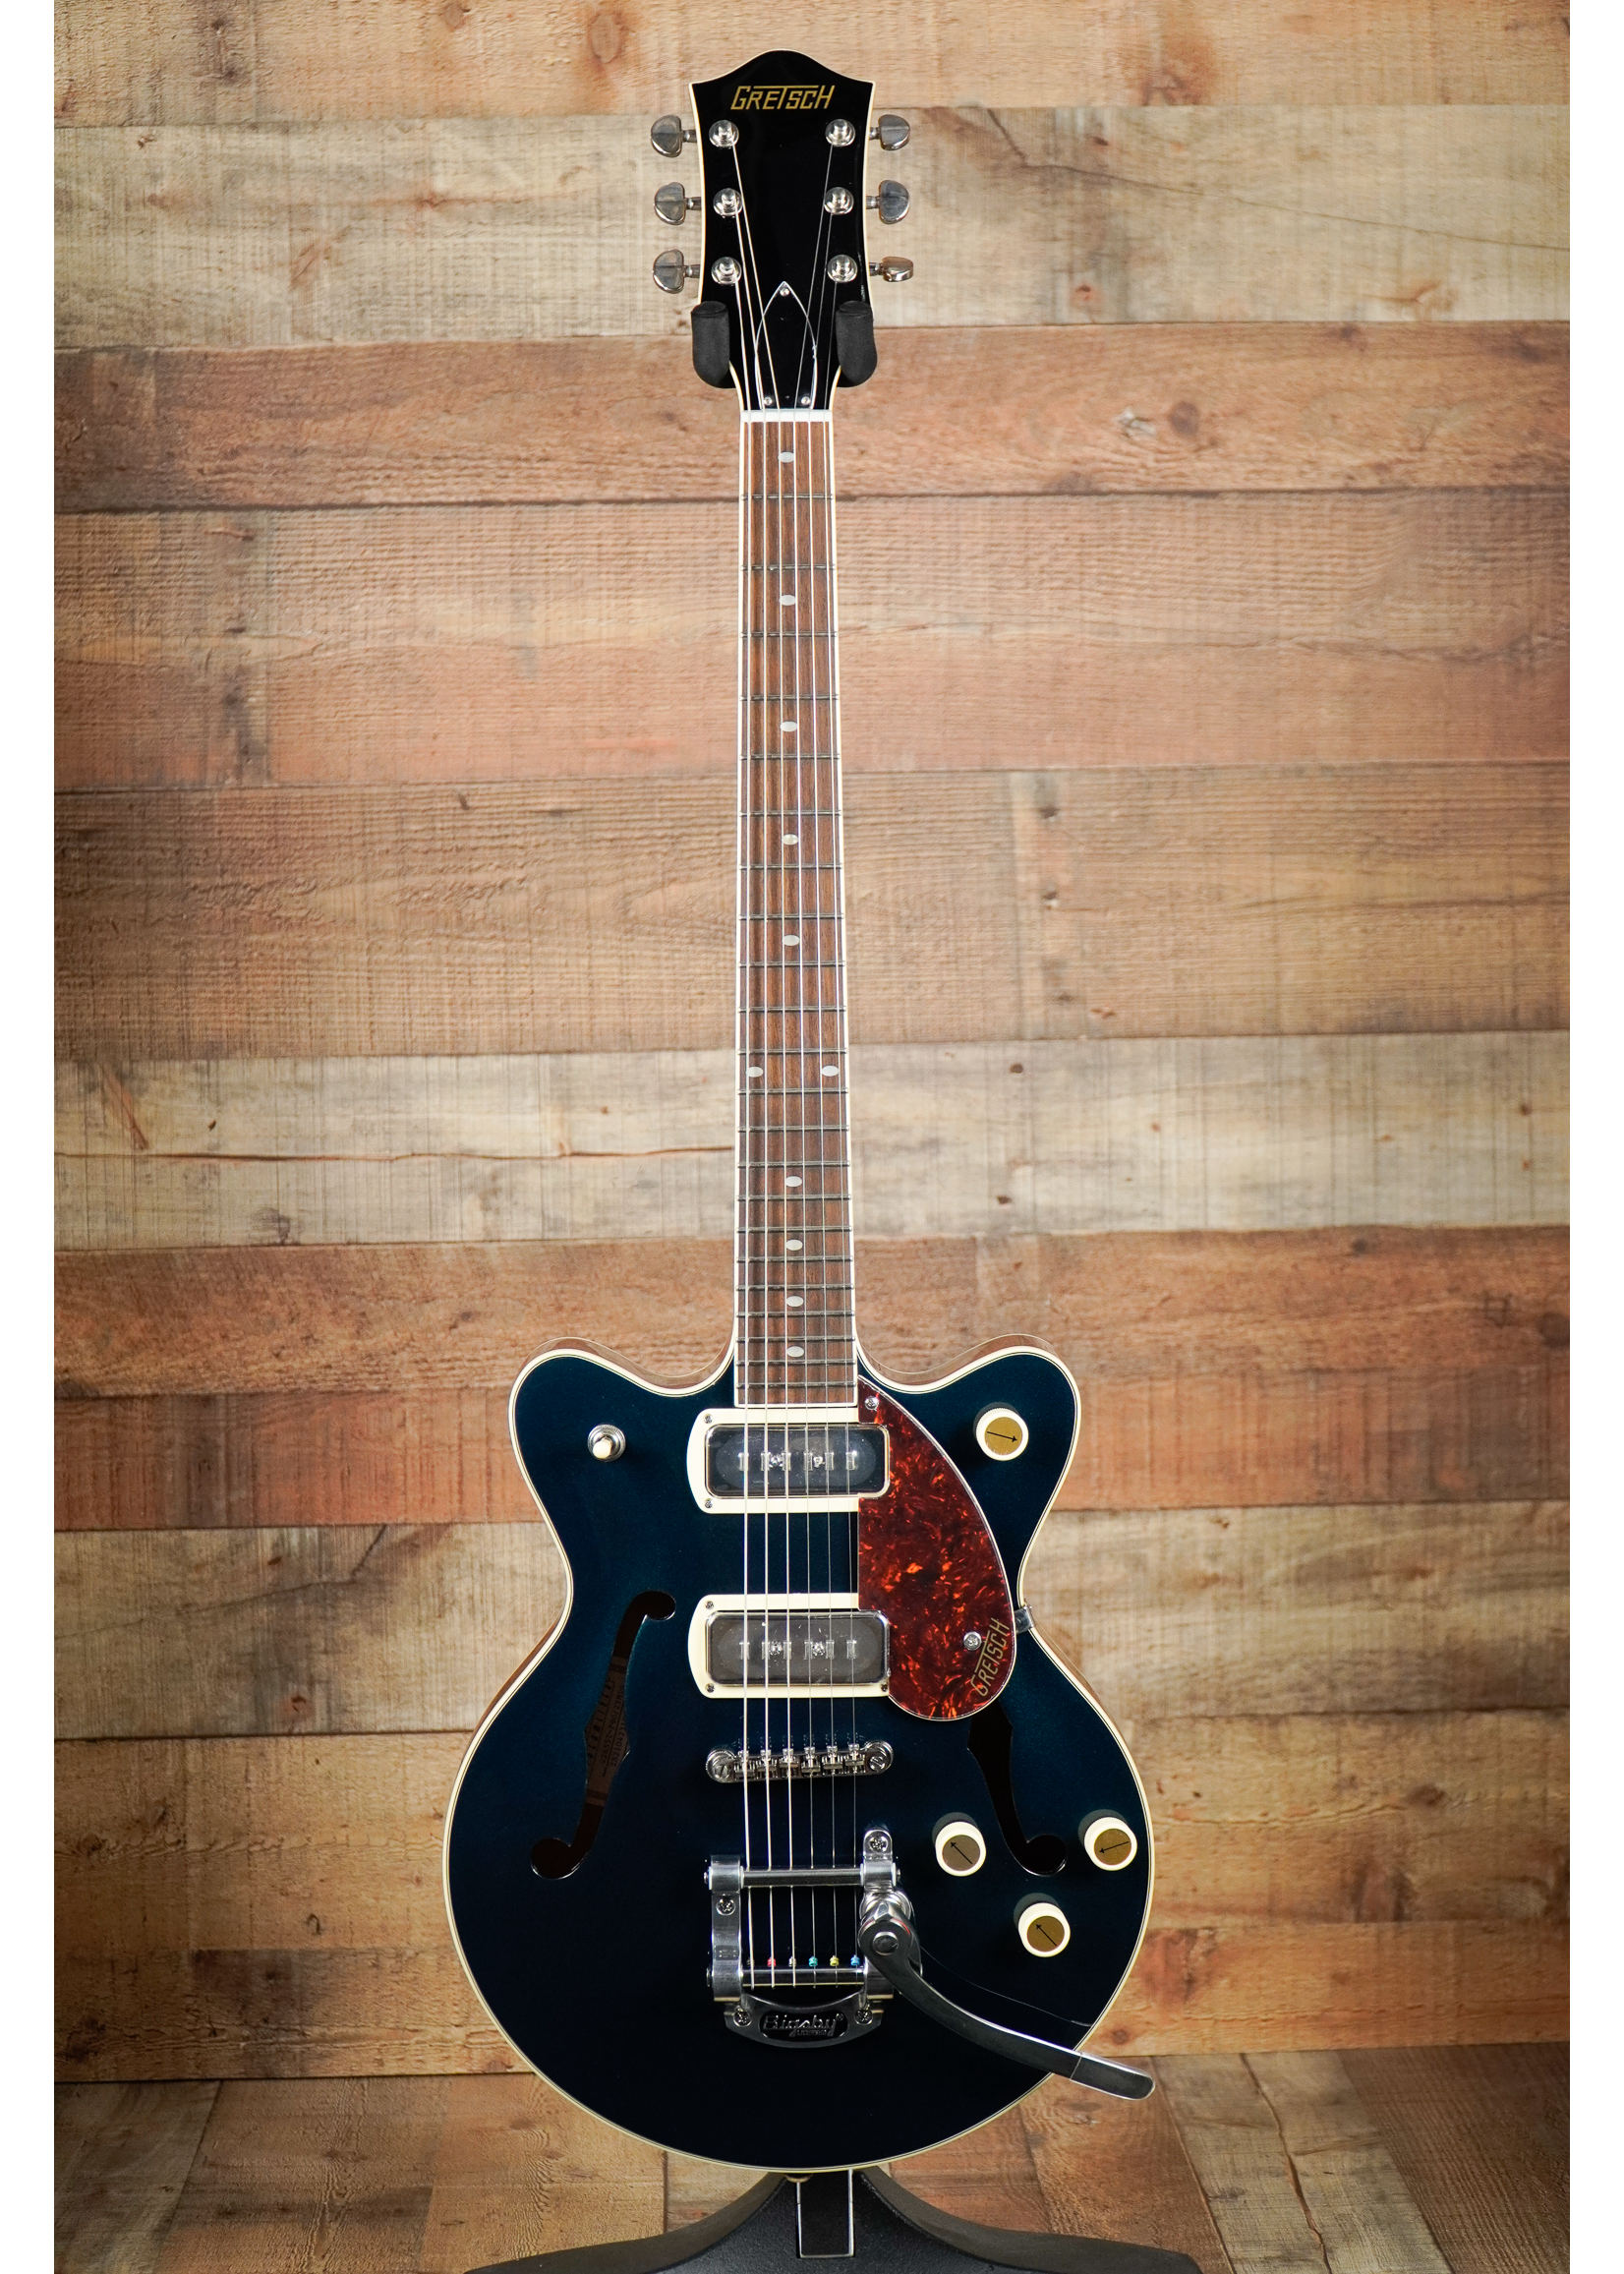 Gretsch Gretsch G2655T-P90 Streamliner™ Center Block Jr. Double-Cut P90 with Bigsby®, Laurel Fingerboard, Two-Tone Midnight Sapphire and Vintage Mahogany Stain